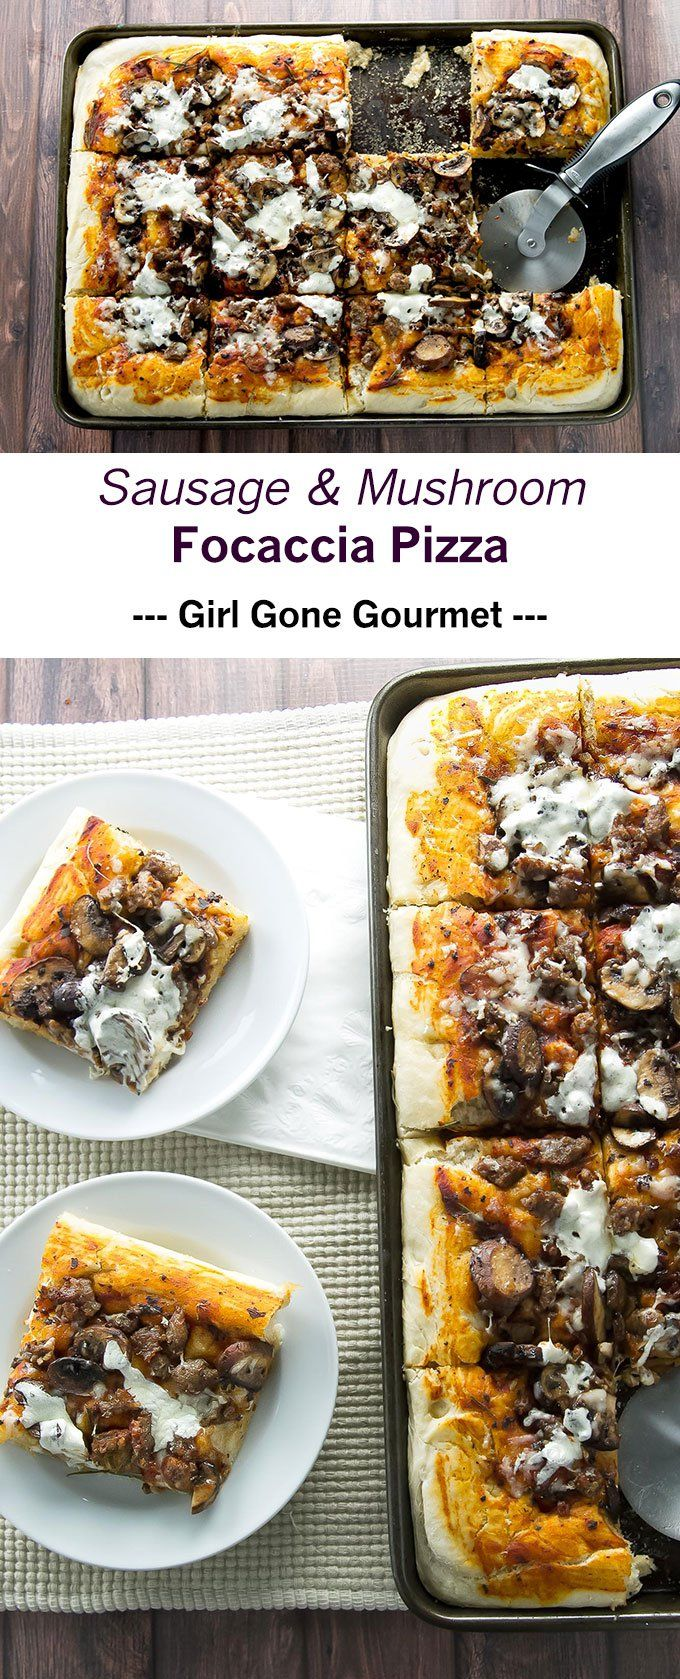 275 best Pizza images on Pinterest | Bagel pizza, Pizza food and ...